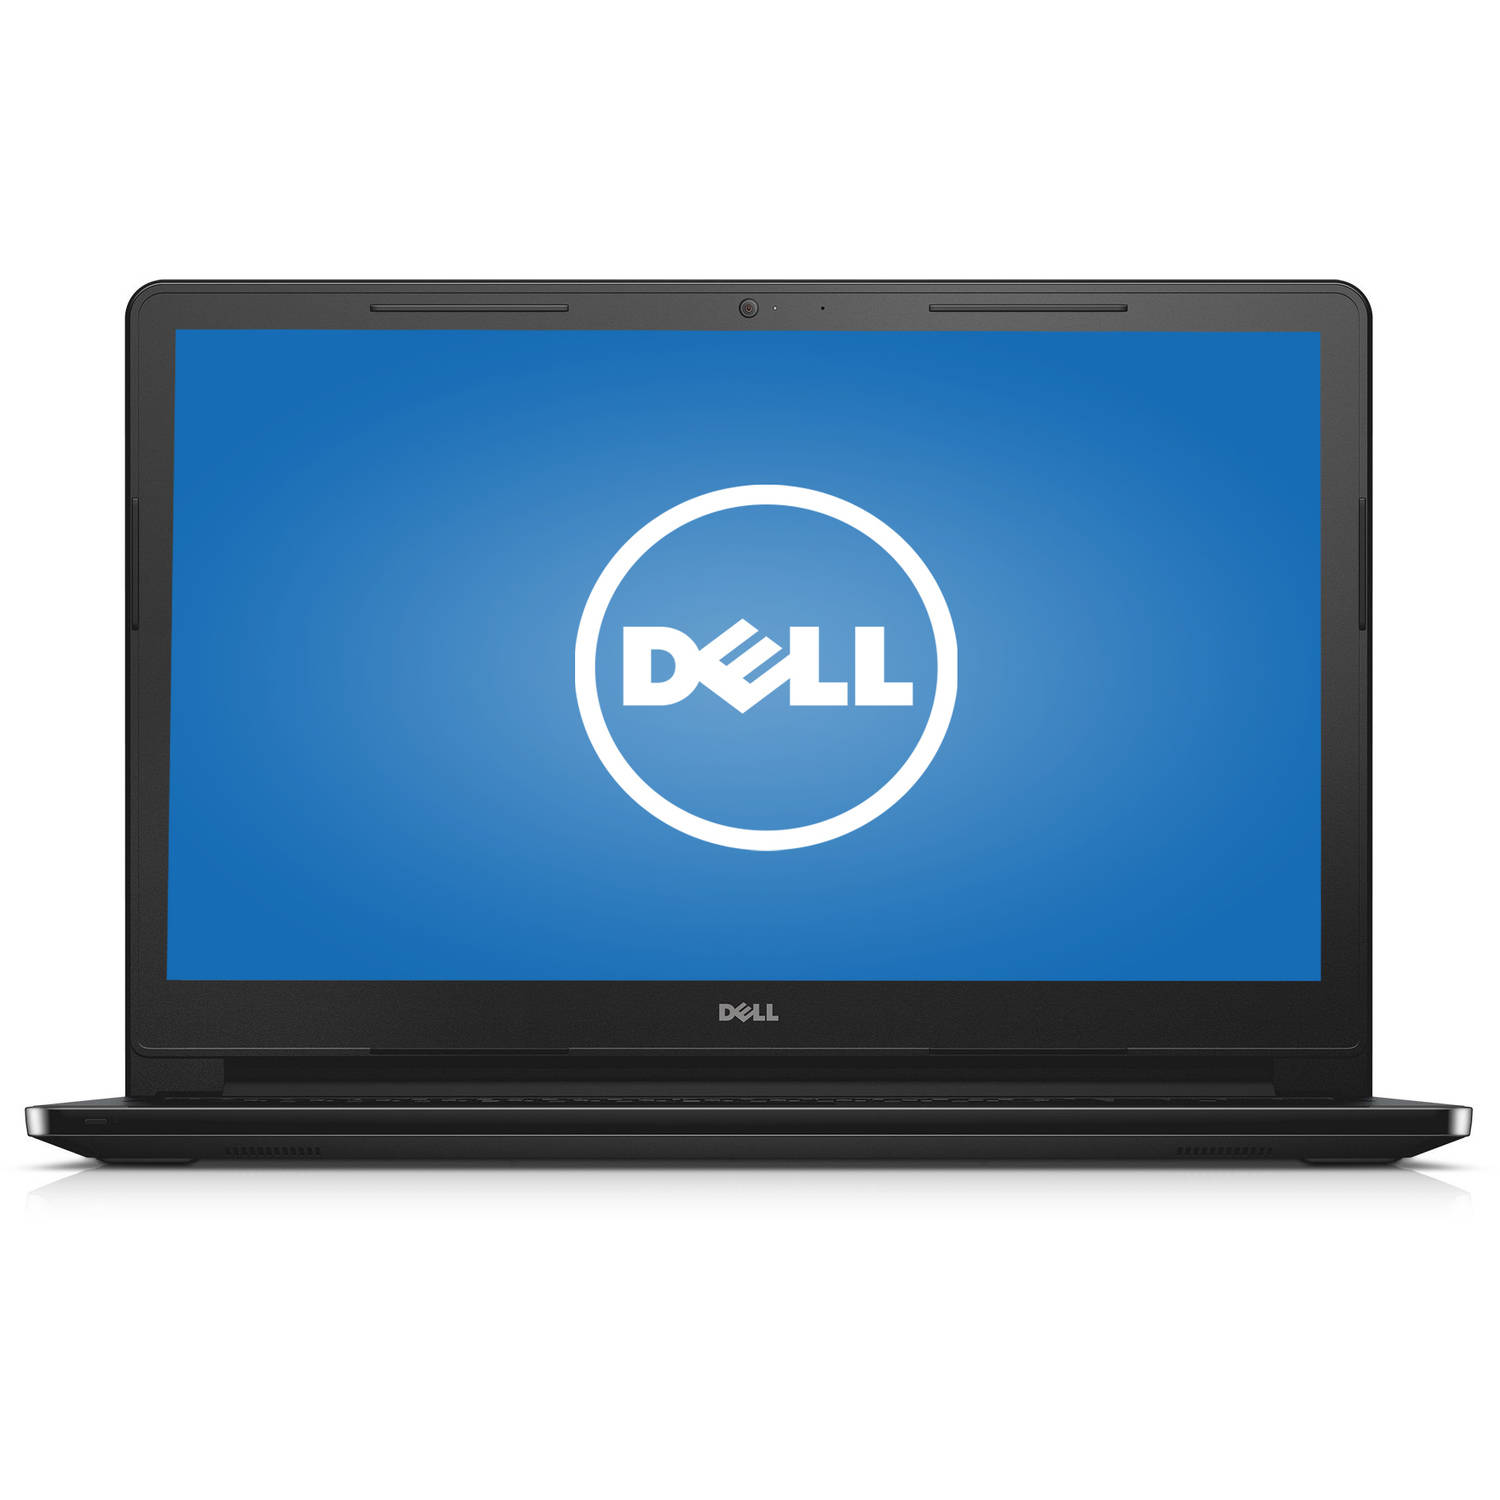 "Dell Black 15.6"" Inspiron i3552 Laptop PC with Intel Celeron N3050 Processor, 4GB"